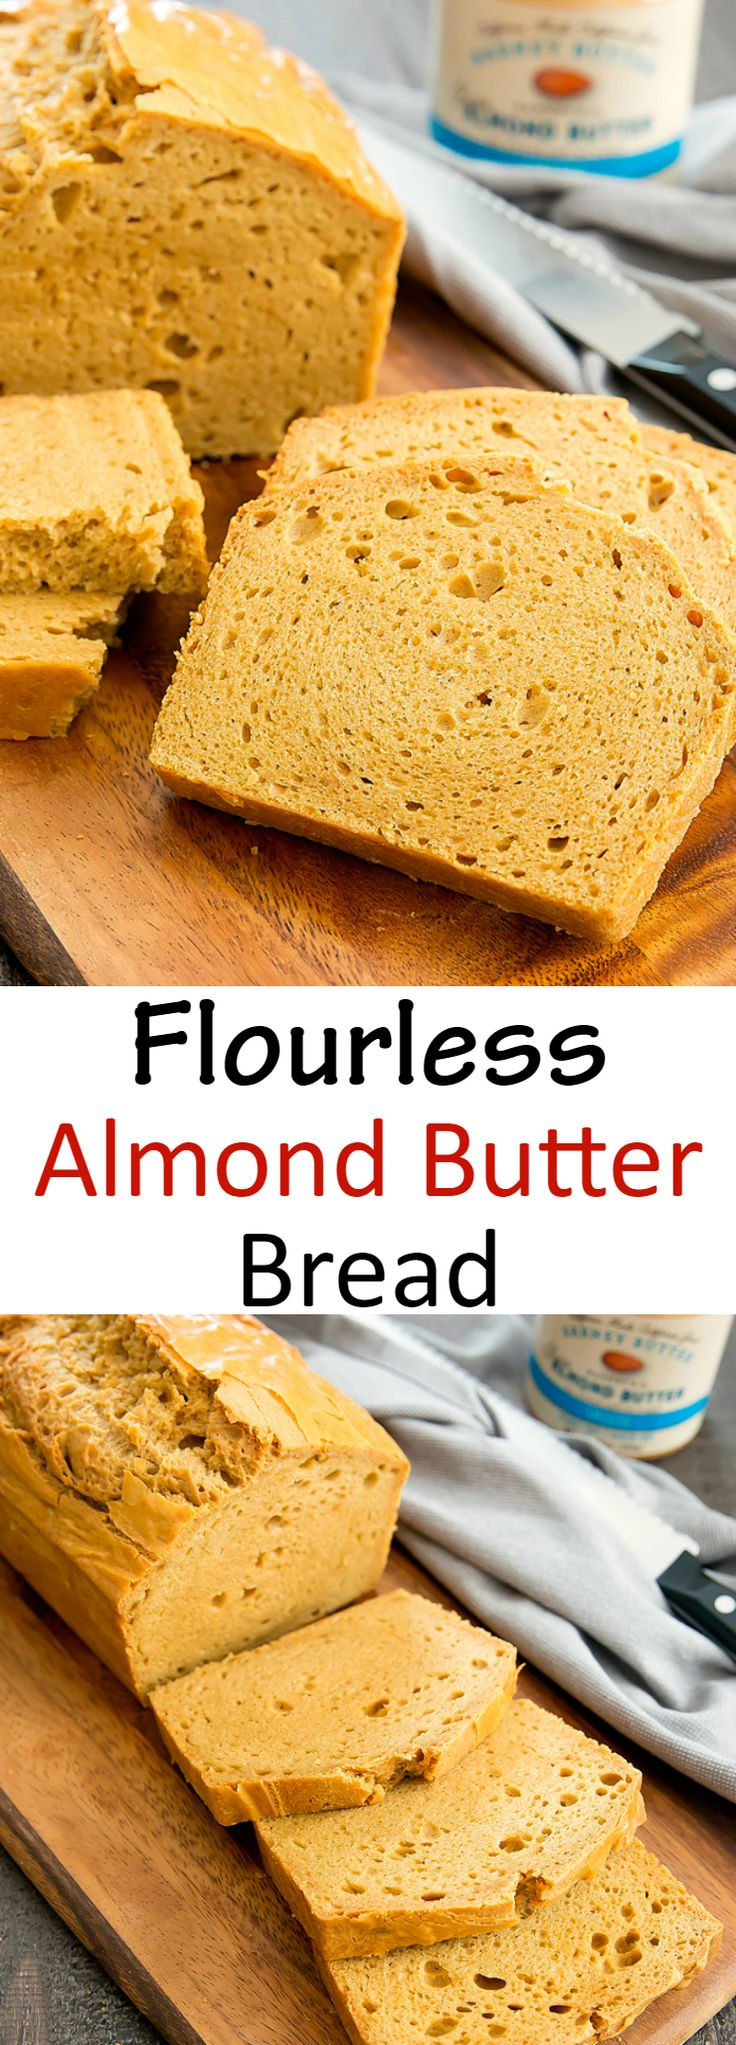 Flourless Almond Butter Bread. Low carb, gluten free bread prepared in one bowl.